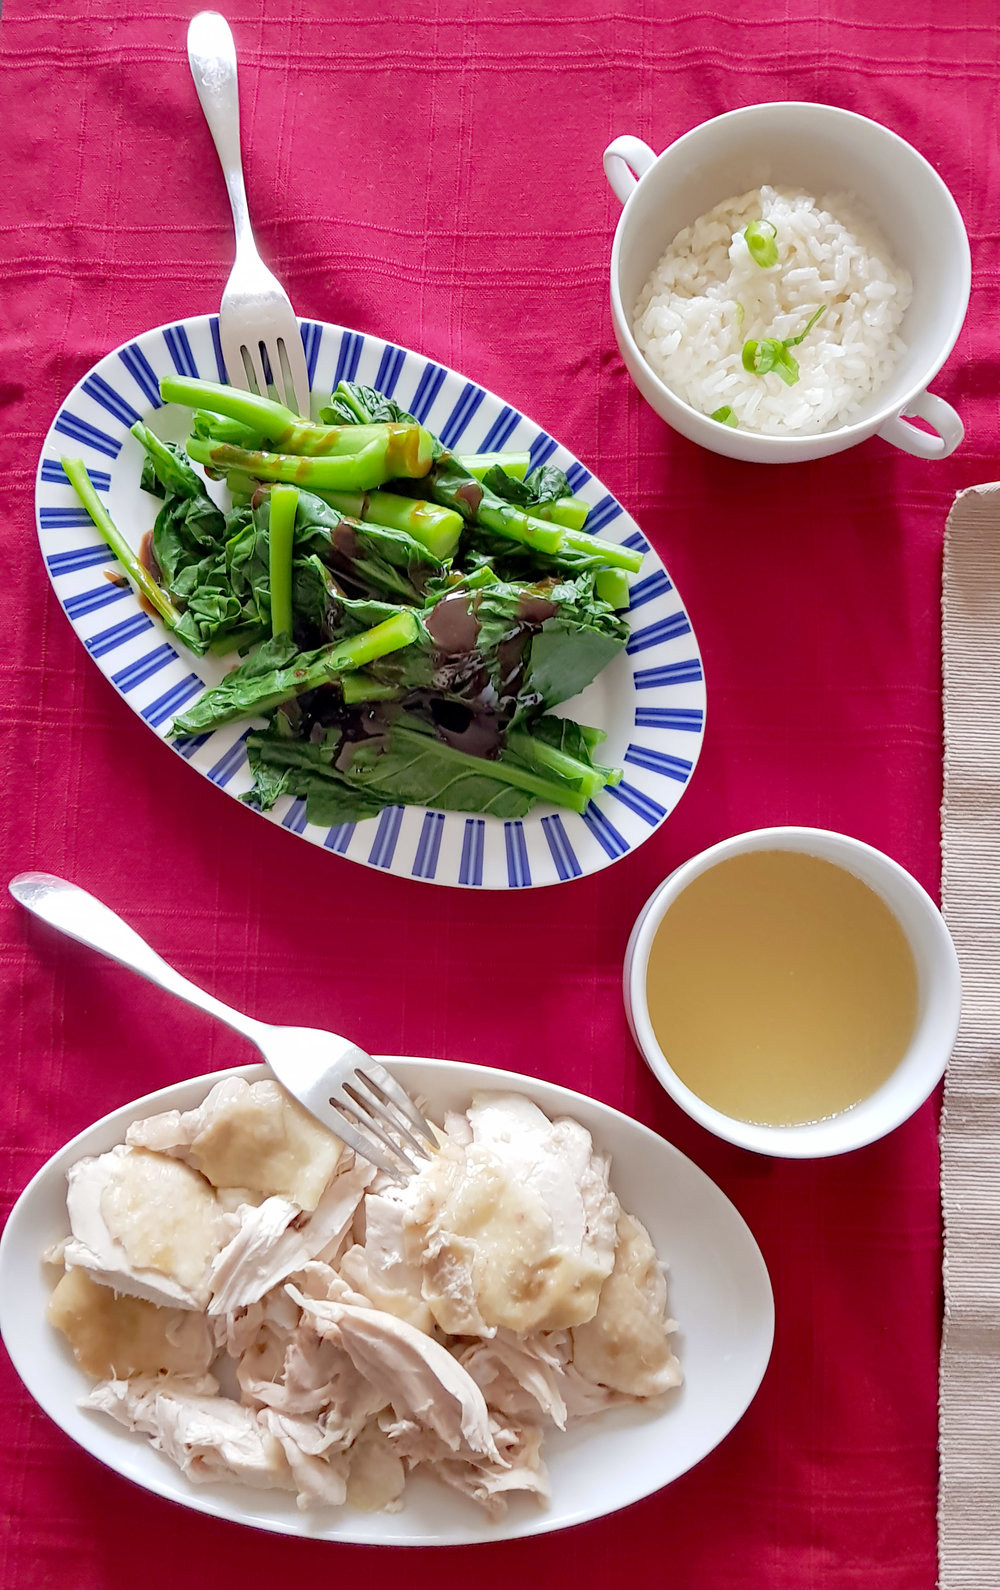 Hainan Chicken and Rice Gai lan Chinese Broccoli recipe Cantonese food